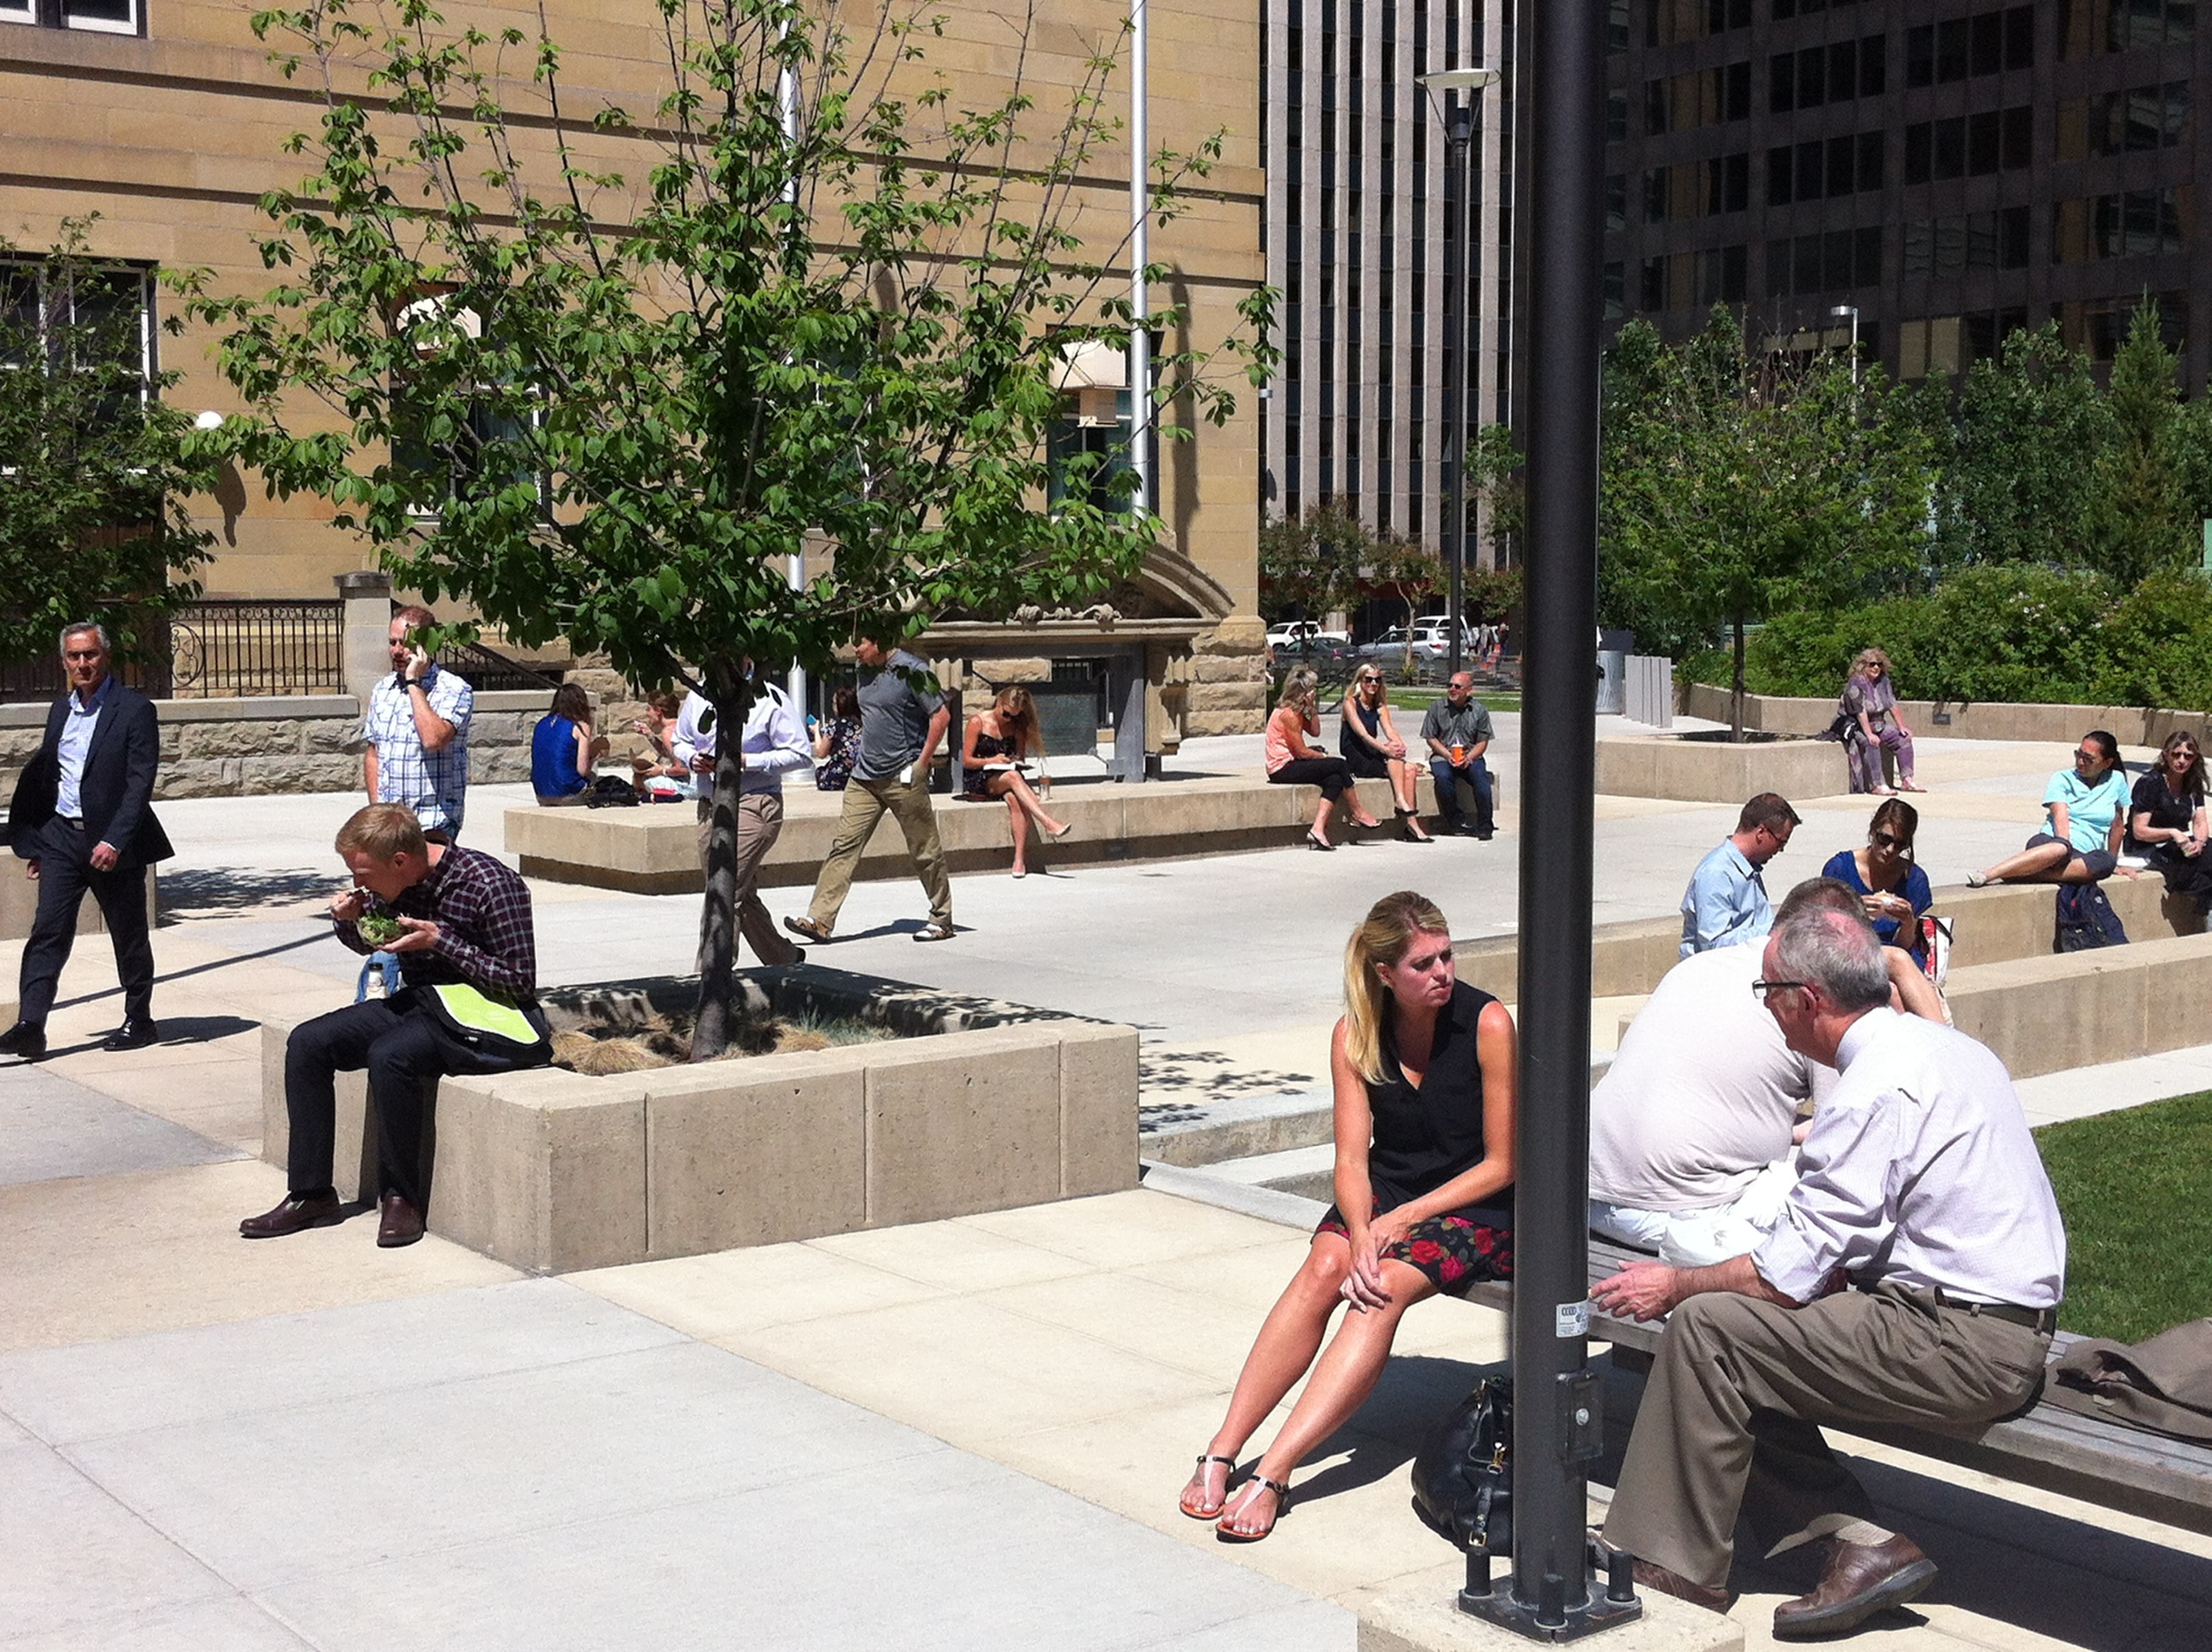 The Harley Hotchkiss Gardens is a popular meeting spot for downtown workers and shoppers. This public space is a good example of go urban design as it is built on top of a 700-stall parking garage, includes a major public artwork, has lots of seating and is directly linked to an LRT station.